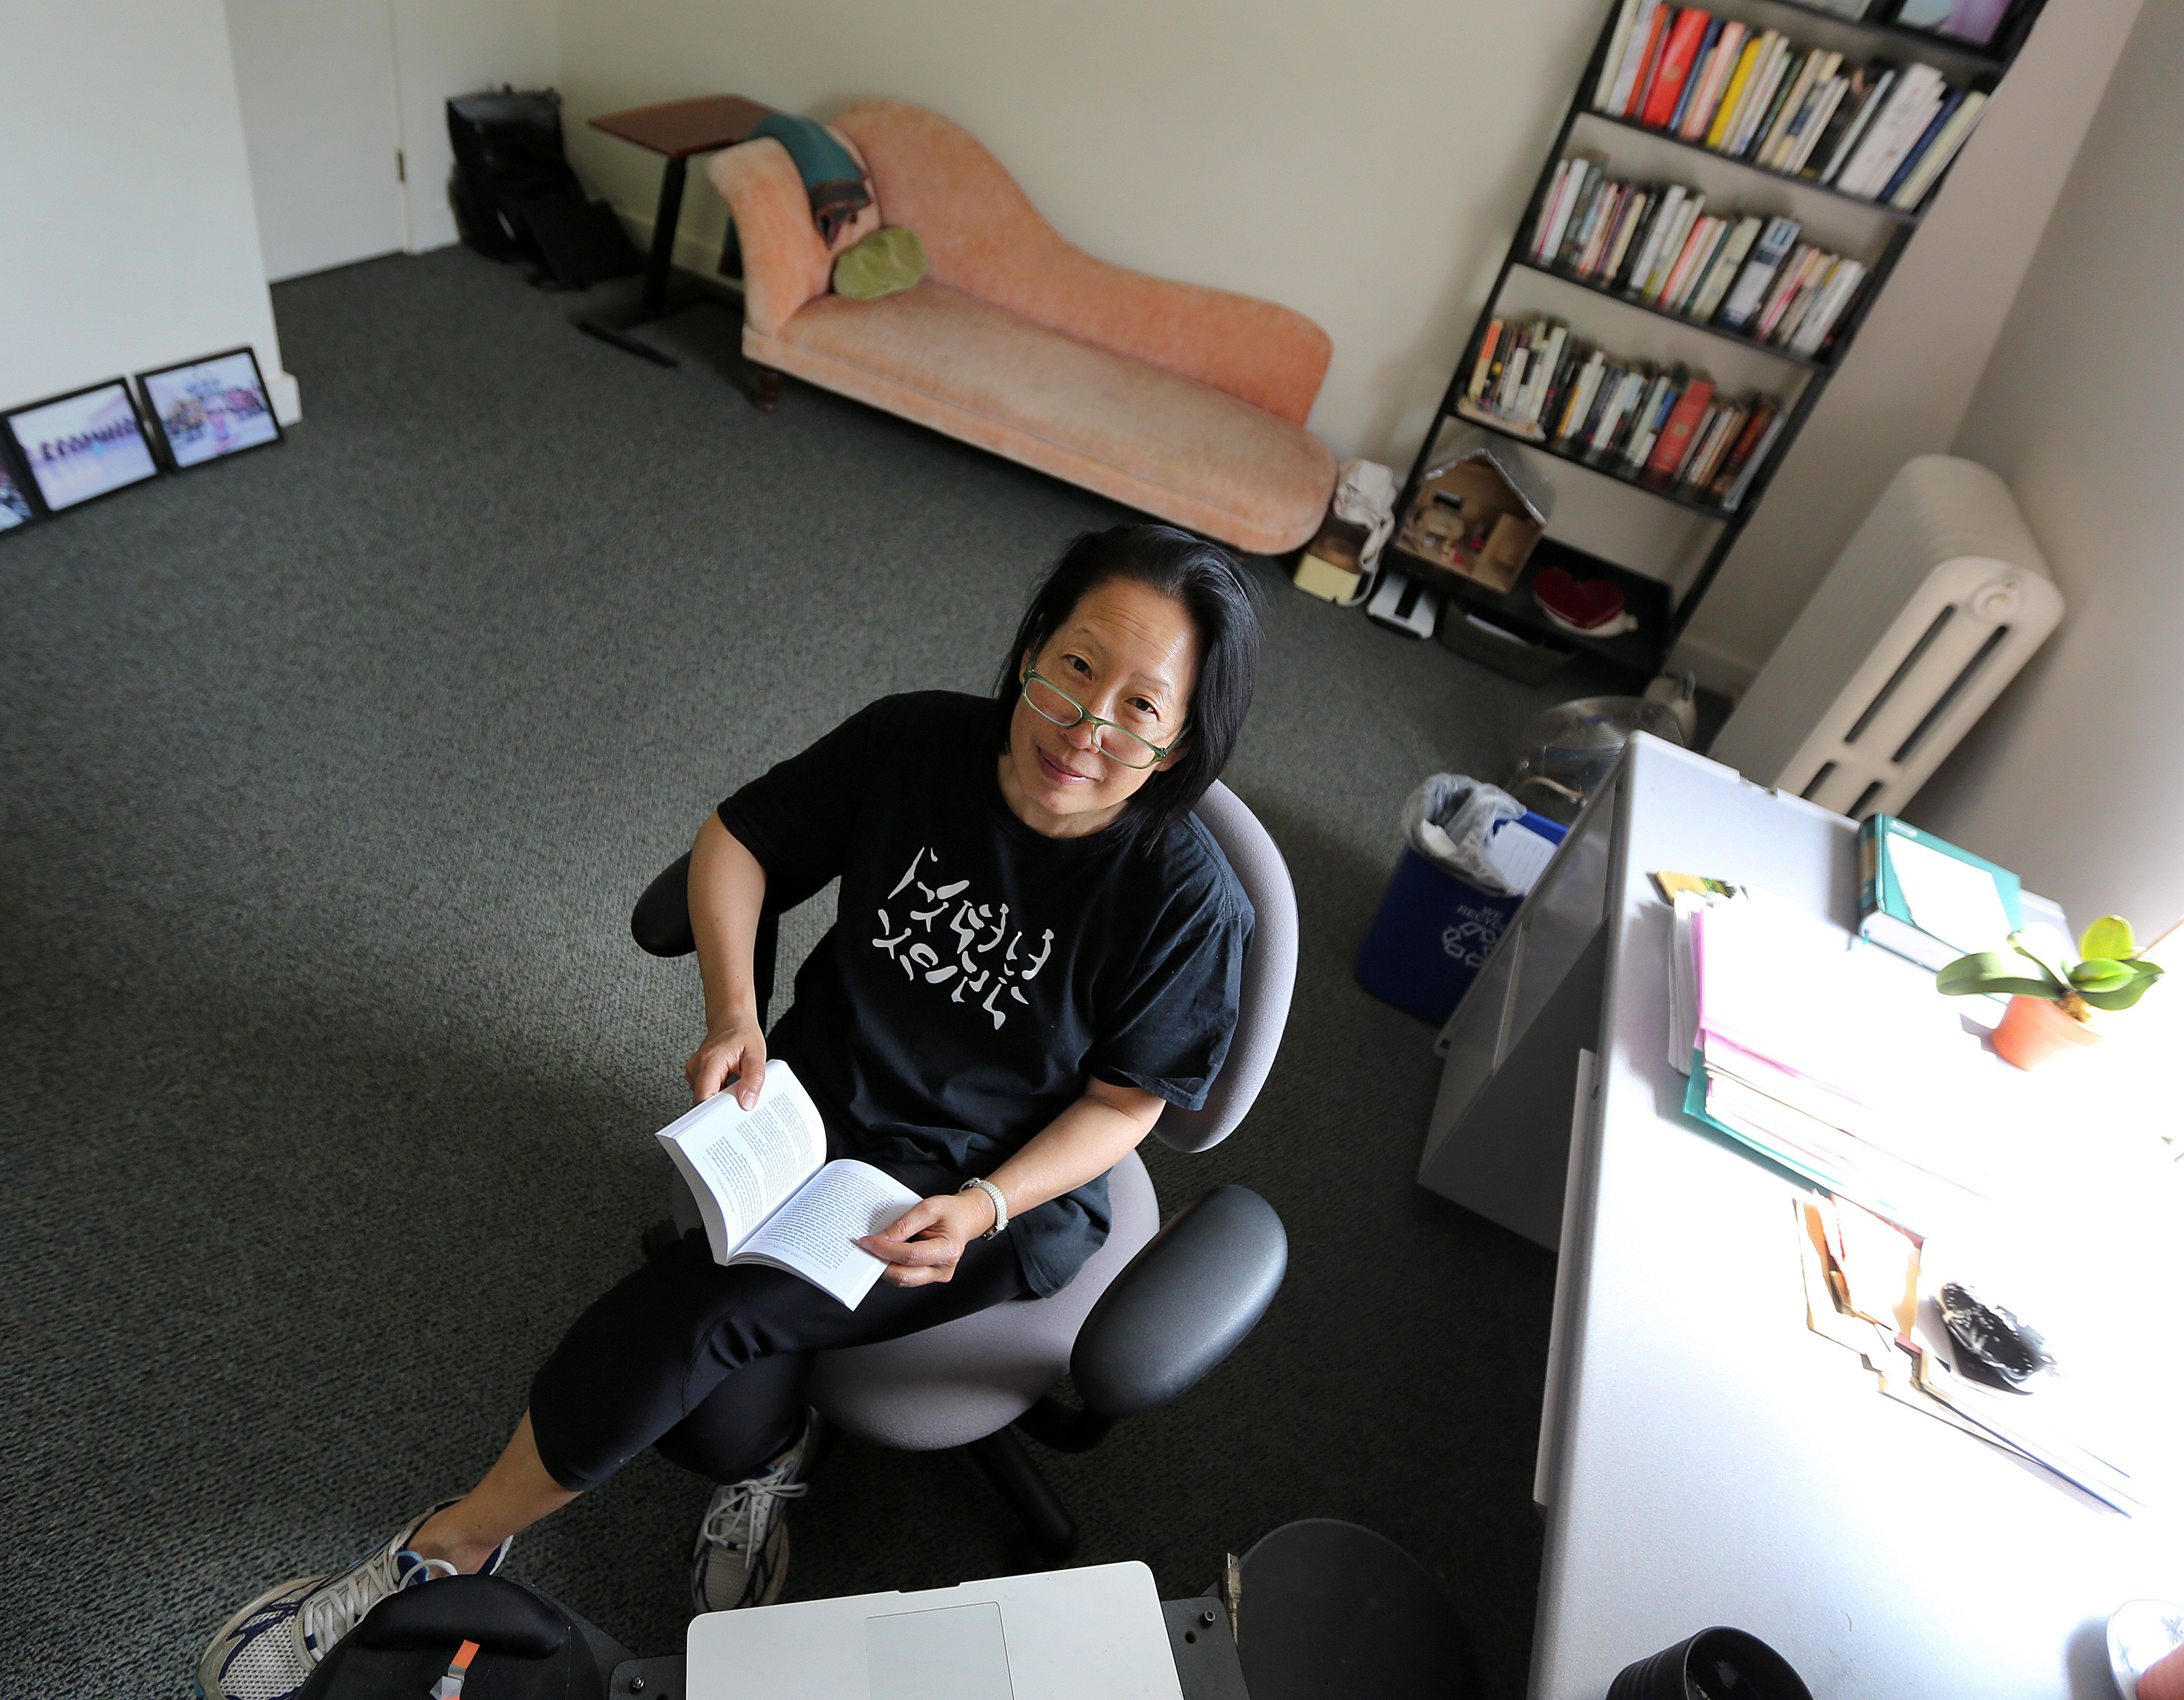 CAMBRIDGE, MA - MAY 28: Novelist Gish Jen works in her writing office in a Radcliffe building, on Tuesday, May 28, 2013.  It is equipped with a fainting couch and reading chair (not shown). (Photo by Pat Greenhouse/The Boston Globe via Getty Images)